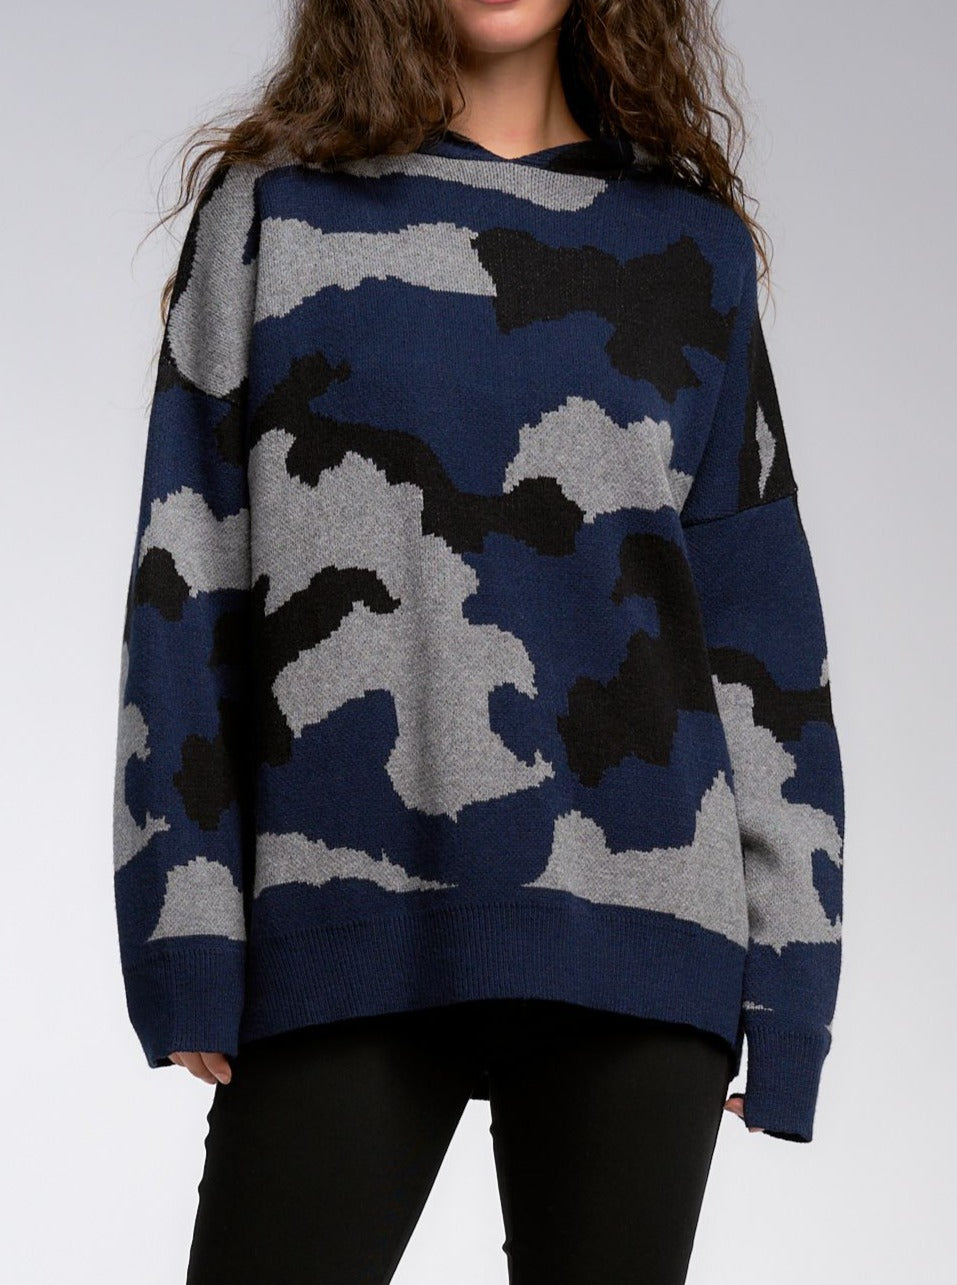 This edgy camo print hooded sweater is perfect for those cooler temps. We love the stunning camo print in shades of deep blue, grey, and black - with its hooded look it's the look of the season! Pair it with your favorite blacks, denims, whites or leggings. It will go with almost anything, the possibilities are endless!   Generous fit, if between sizes size up. 47% VISCOSE, 28% POLYESTER, 25% NYLON